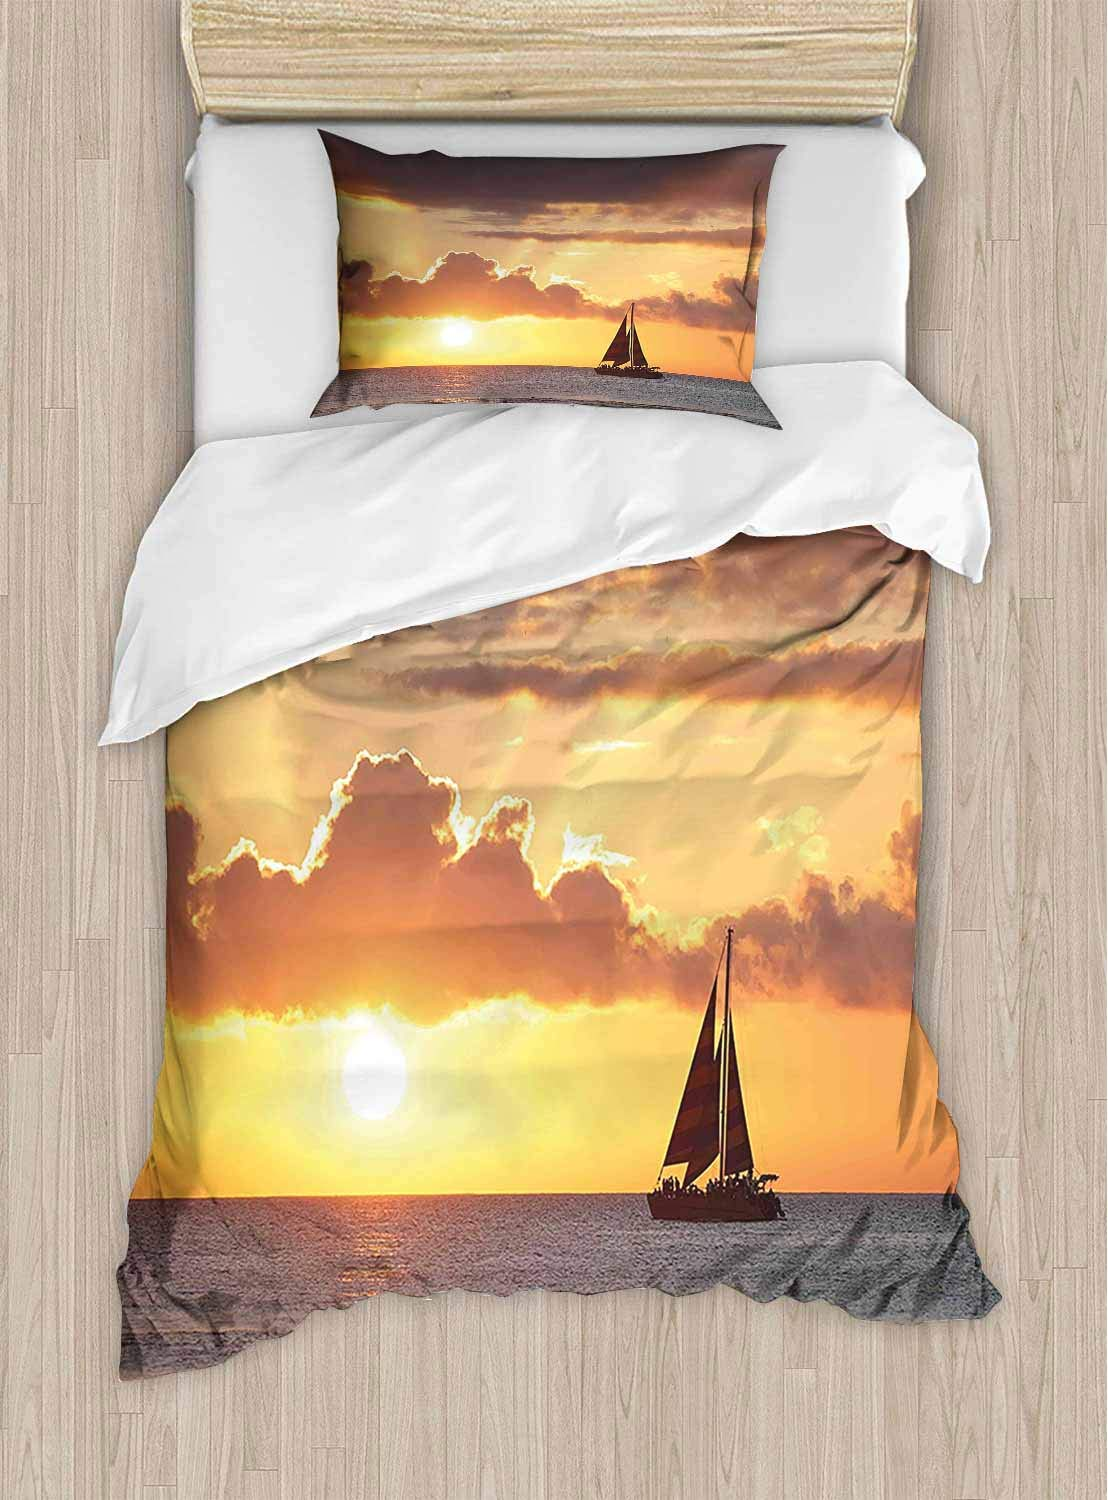 shirlyhome Extra Soft Luxury Hotel Sheets A Boat in The Ocean and Cloudy Sky at Beautiful Sunset Digital Image Long Durable - X-Long Twin